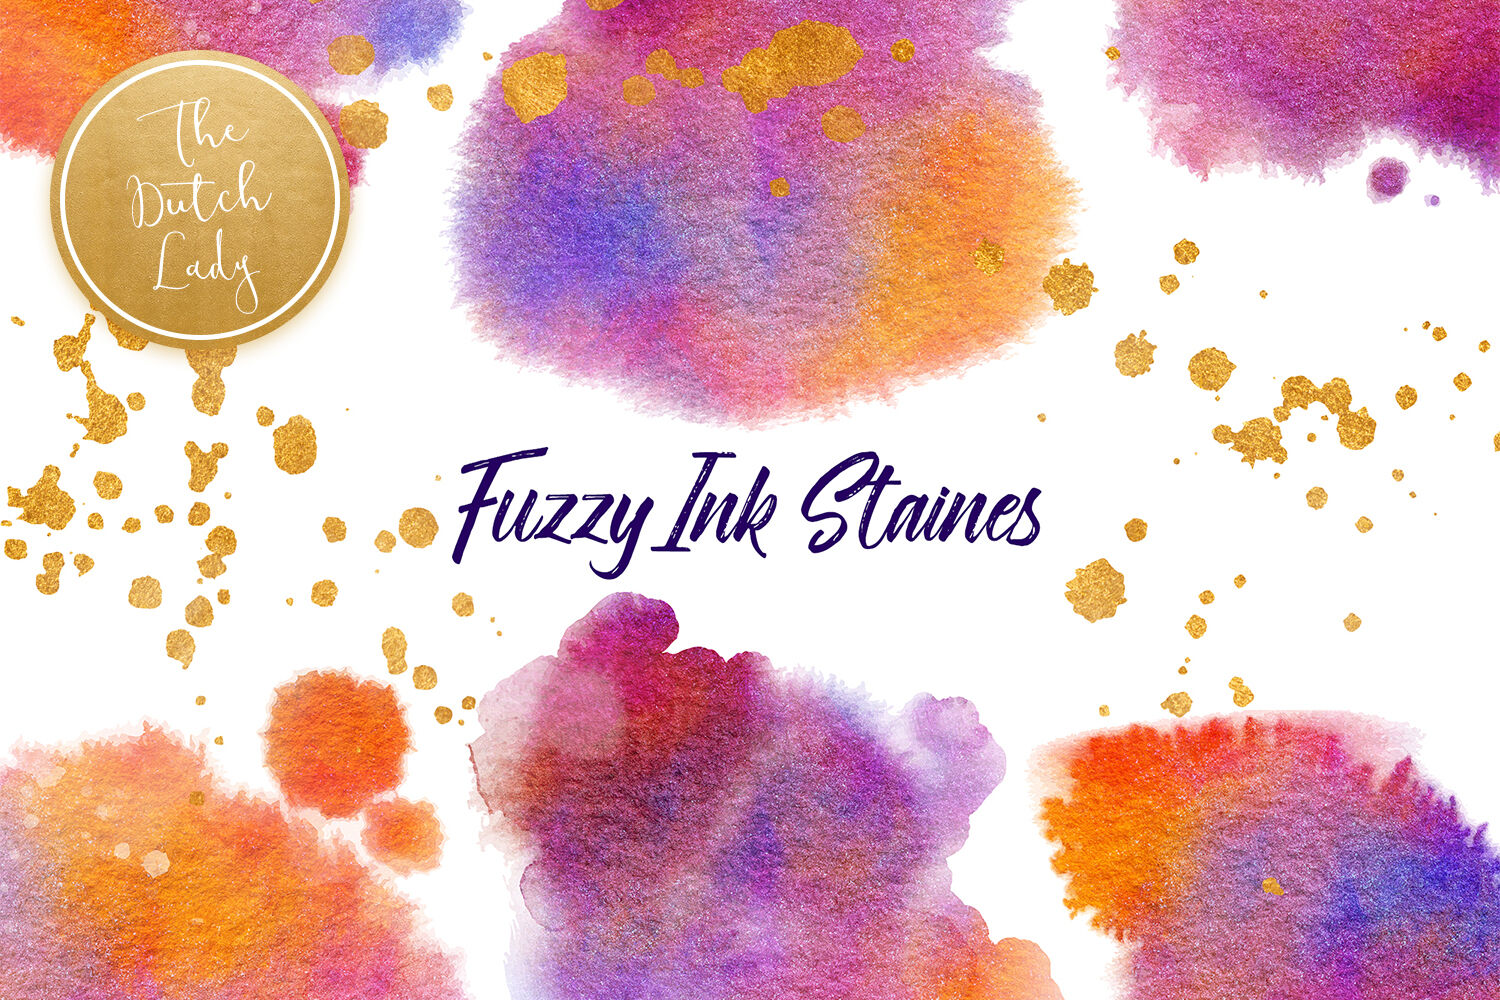 Fuzzy Ink Stain Clipart Set By The Dutch Lady Designs